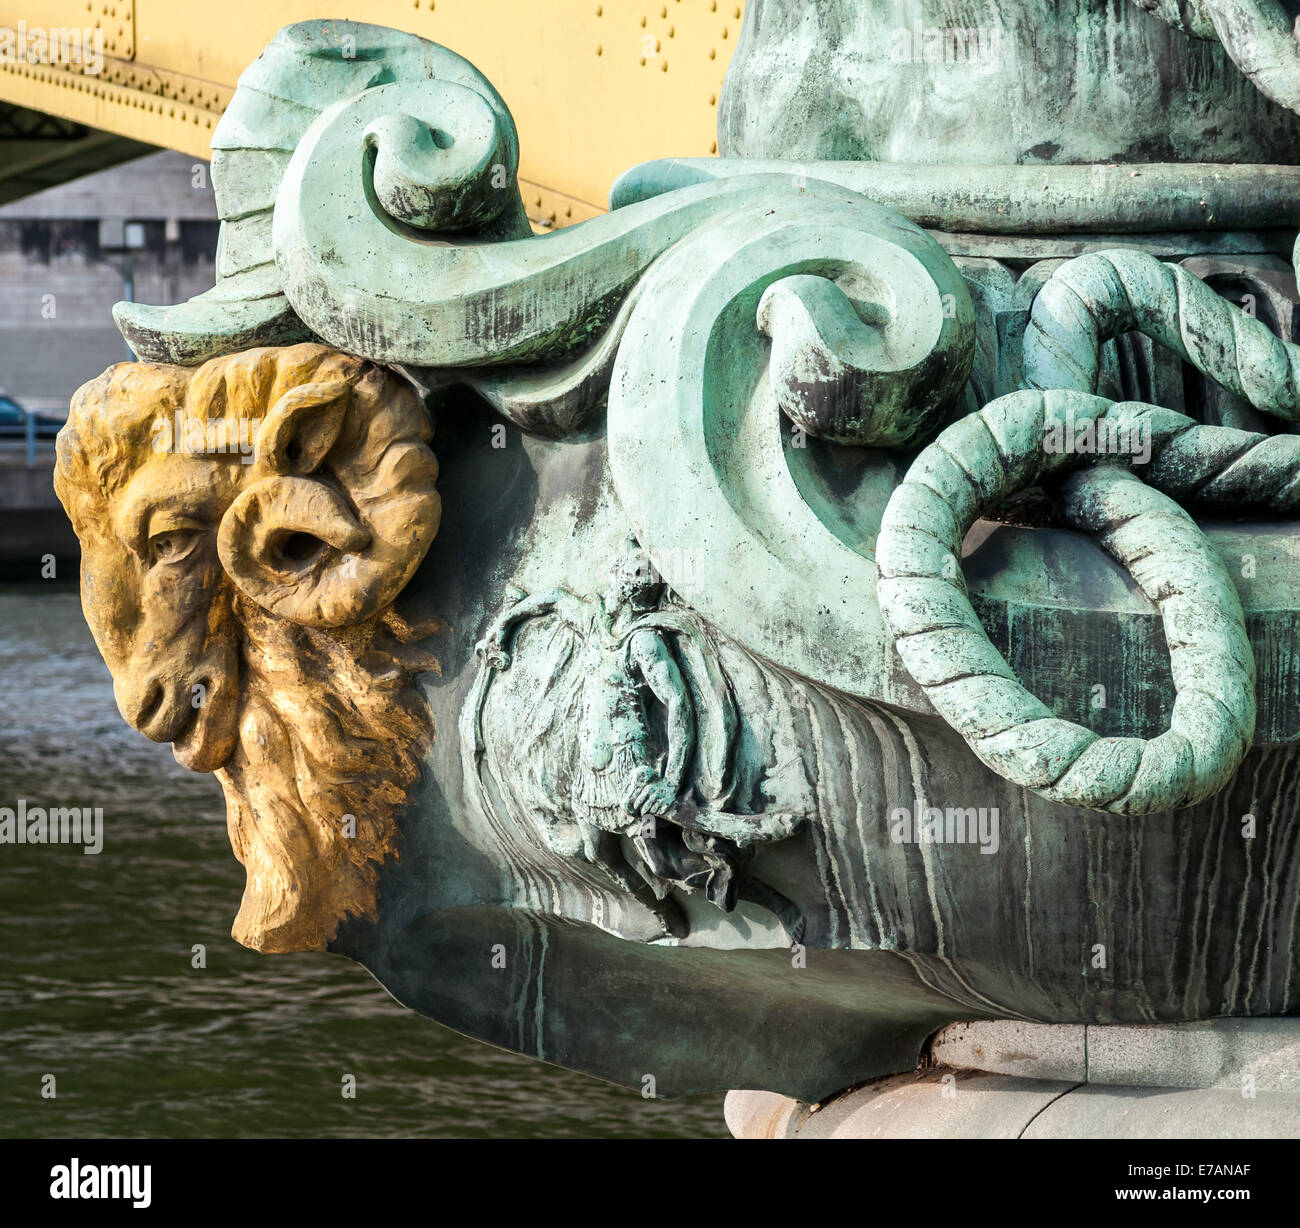 A close up of the golden ram head sculpture on Pont Mirabeau which crossing the Seine River in Paris France. - Stock Image